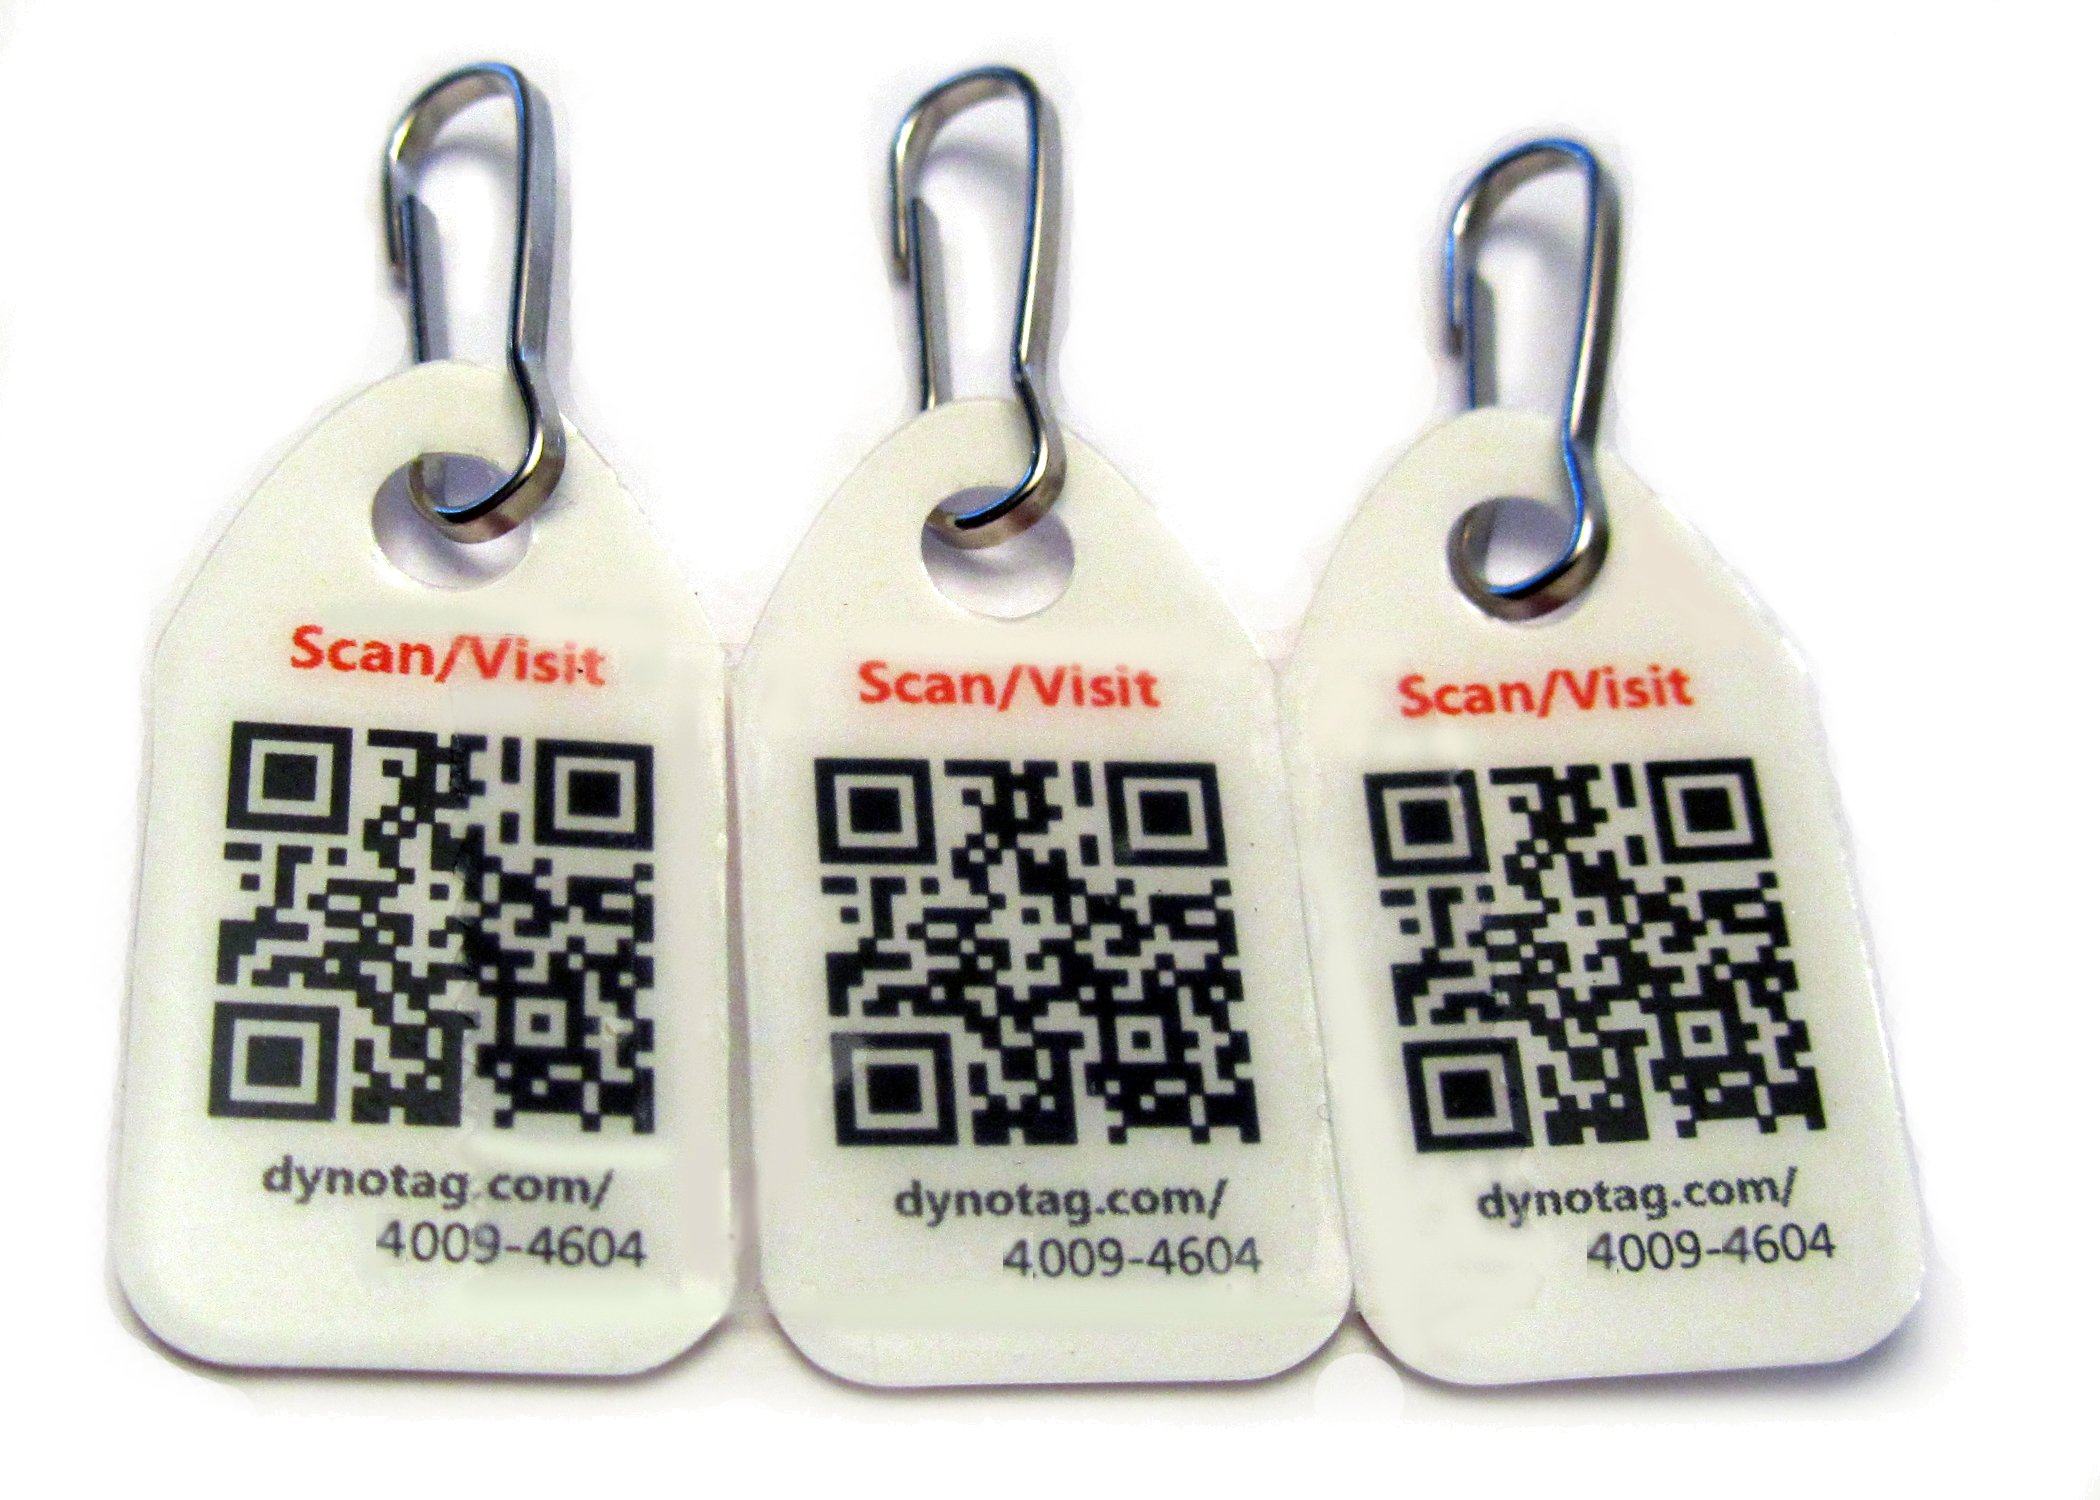 Dynotag Web Enabled Smart Micro Zipper Tags with DynoIQ & Lifetime Recovery Service. 3 Identical + SnapHooks